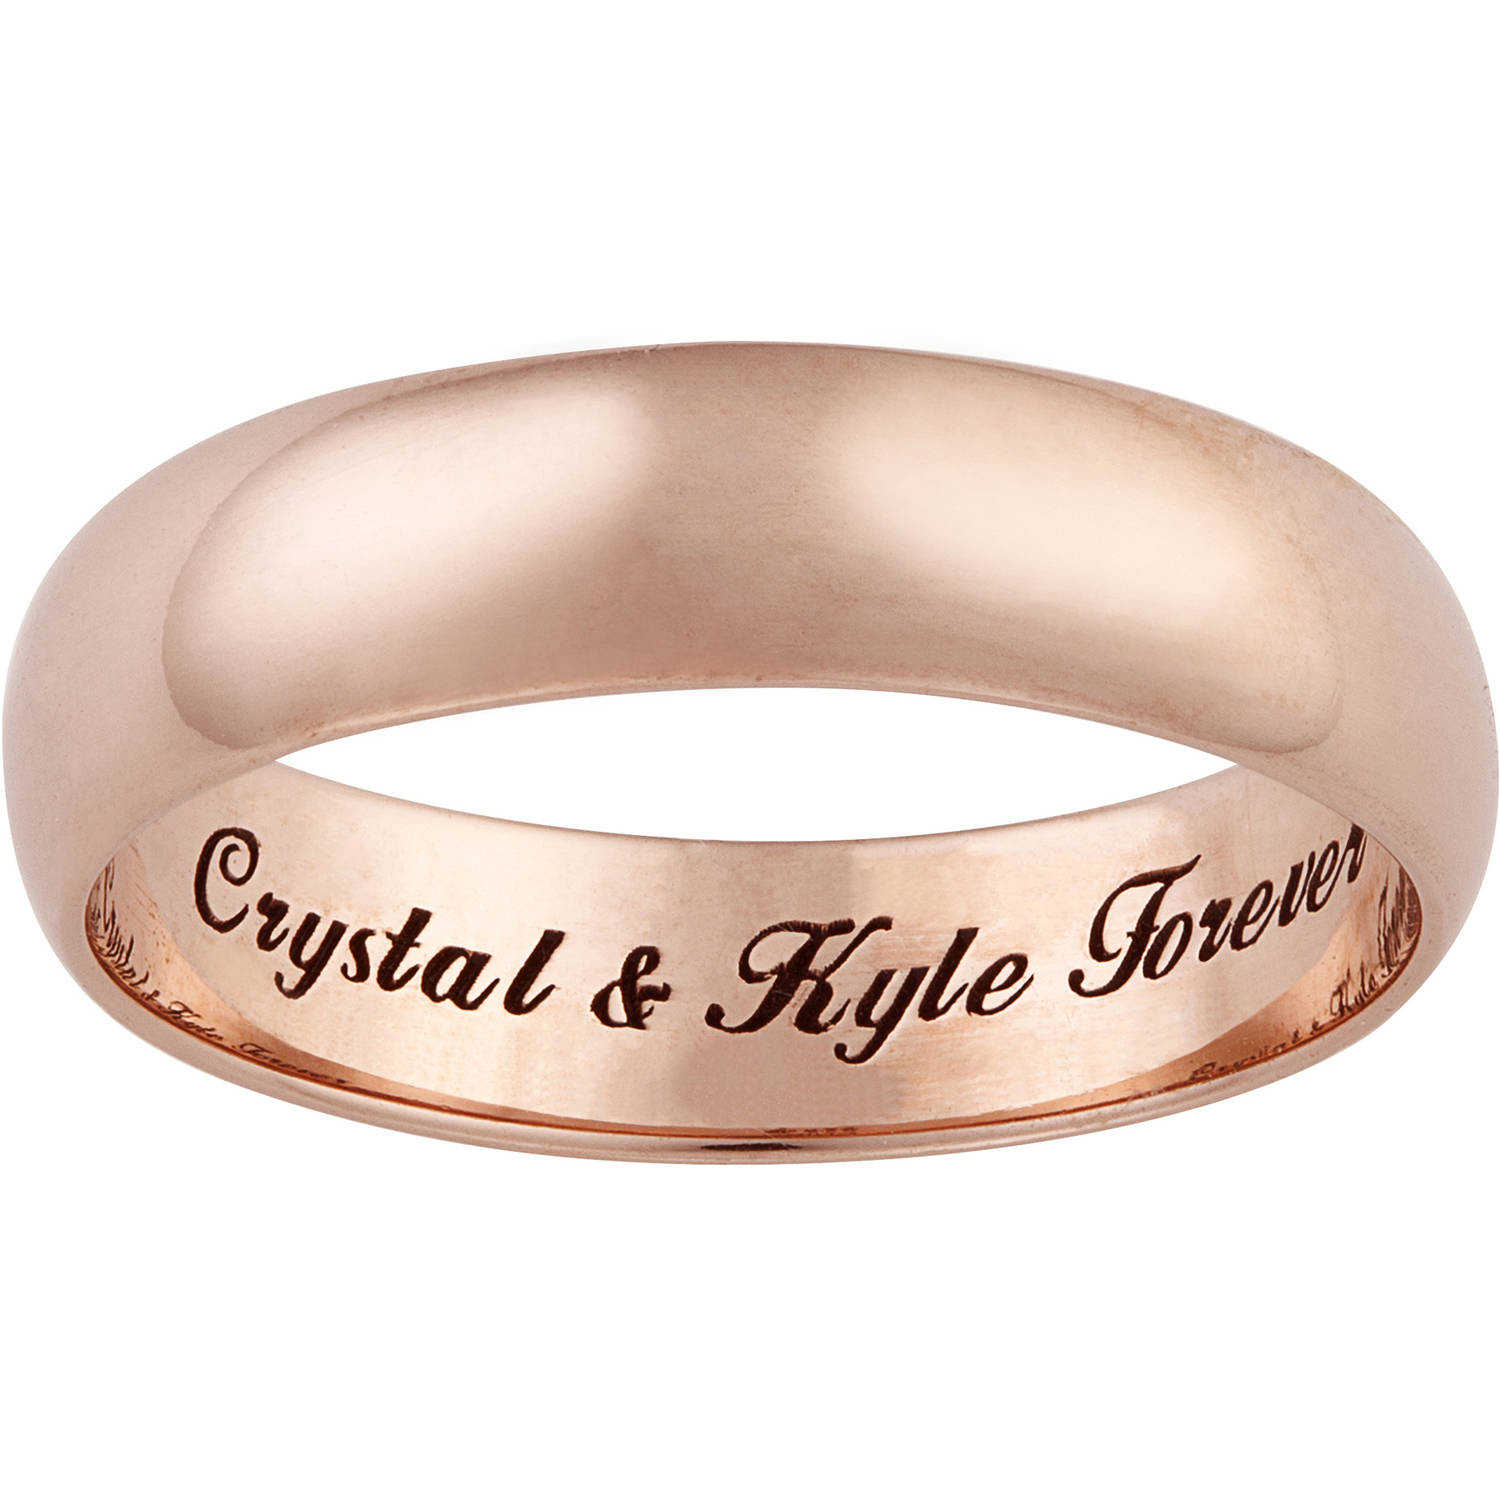 Personalized Rose Gold over Sterling Silver Engraved Message Ring, 5mm